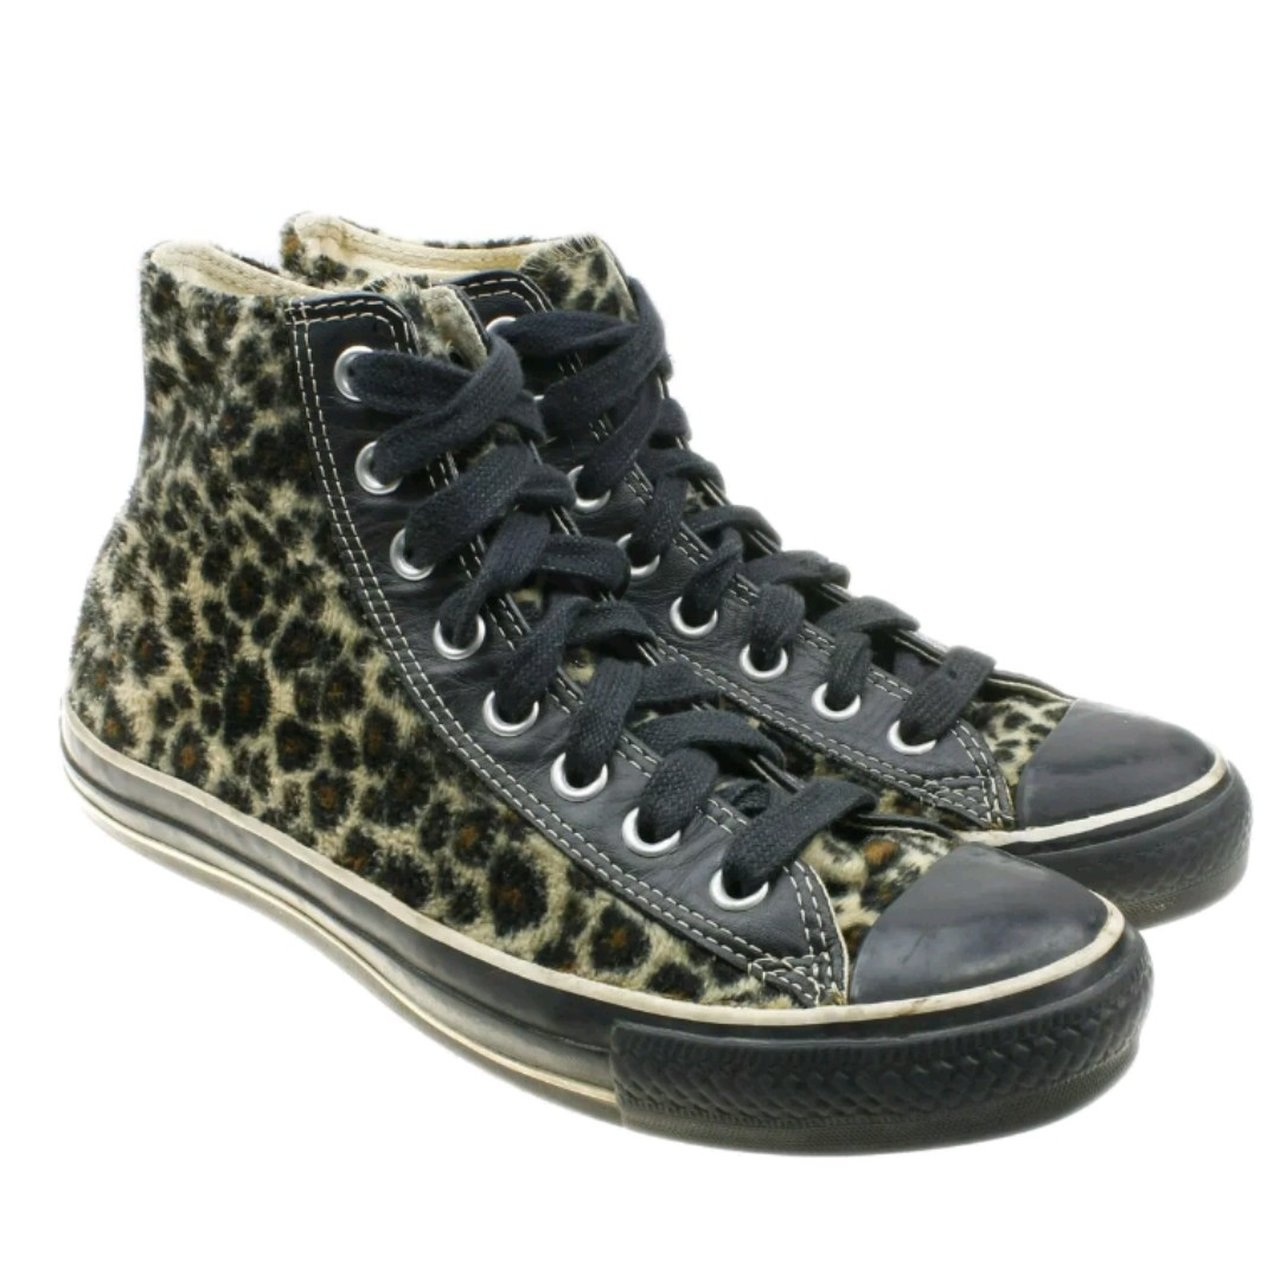 d2f5fc8de605 Converse Chuck Taylor All Star High Top 1K661 Leopard Print - Depop